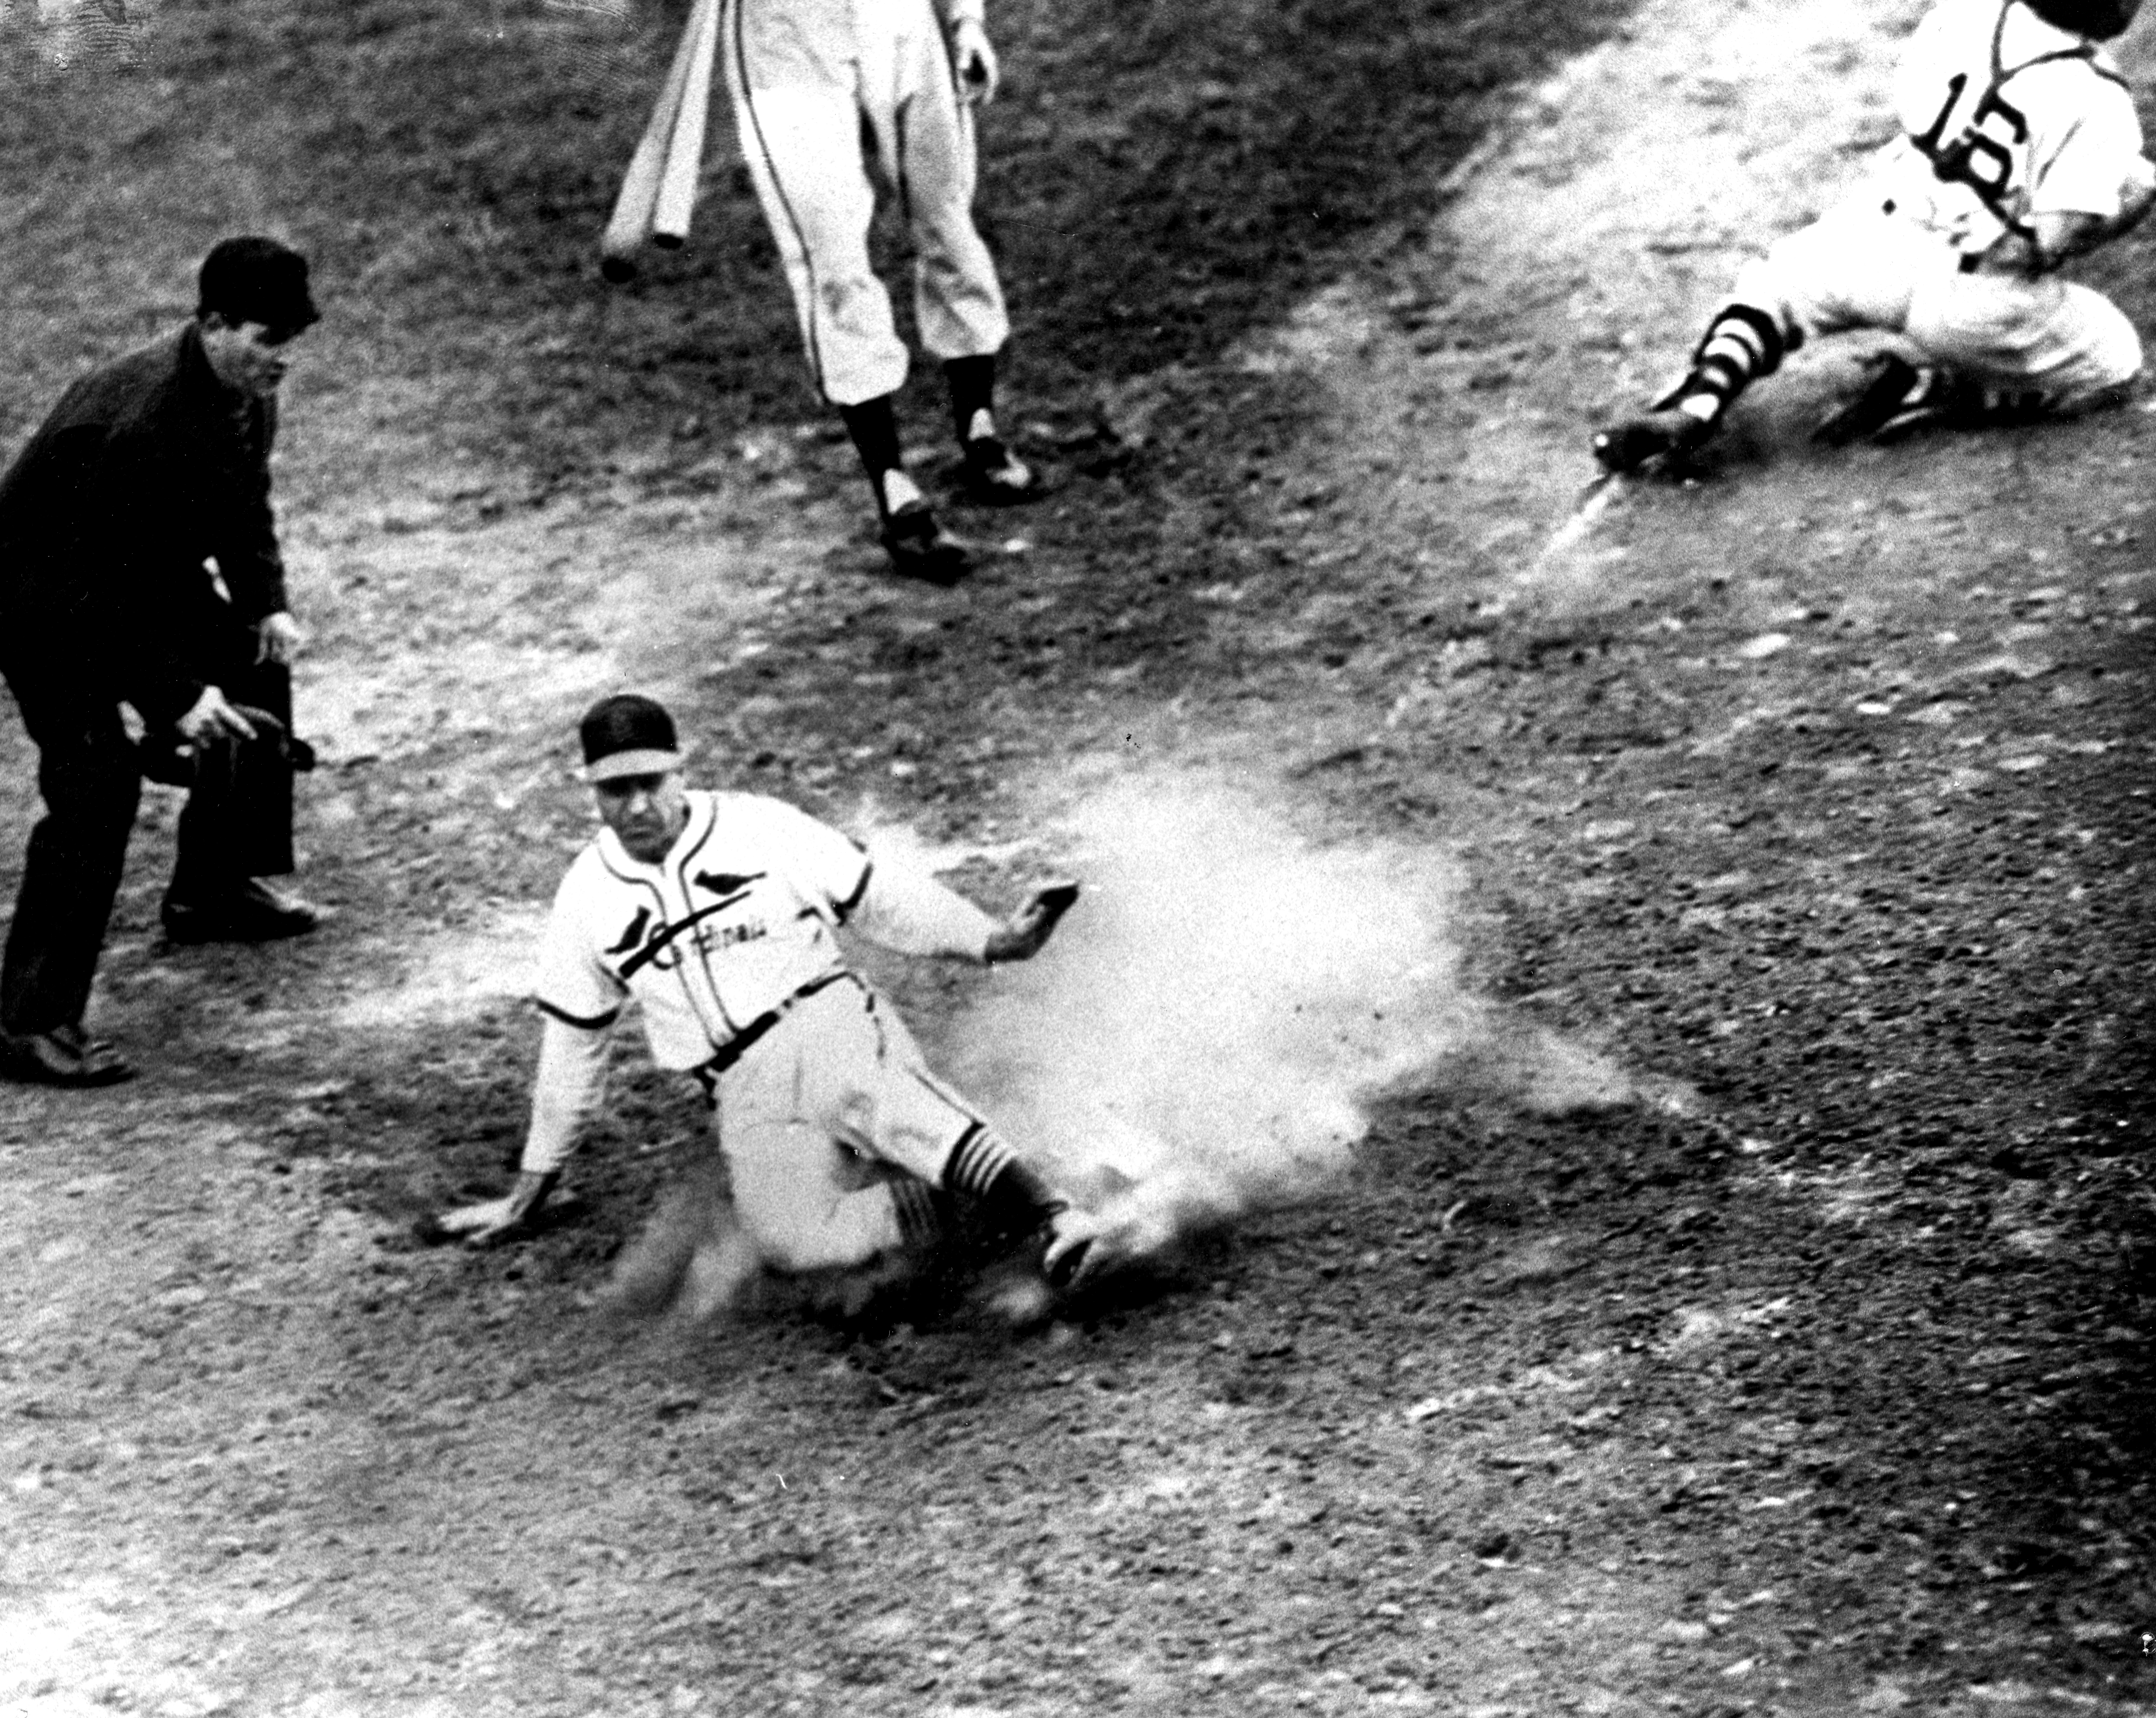 Red Sox lose Game 7 to Cardinals in 1946 World Series - The Boston ...